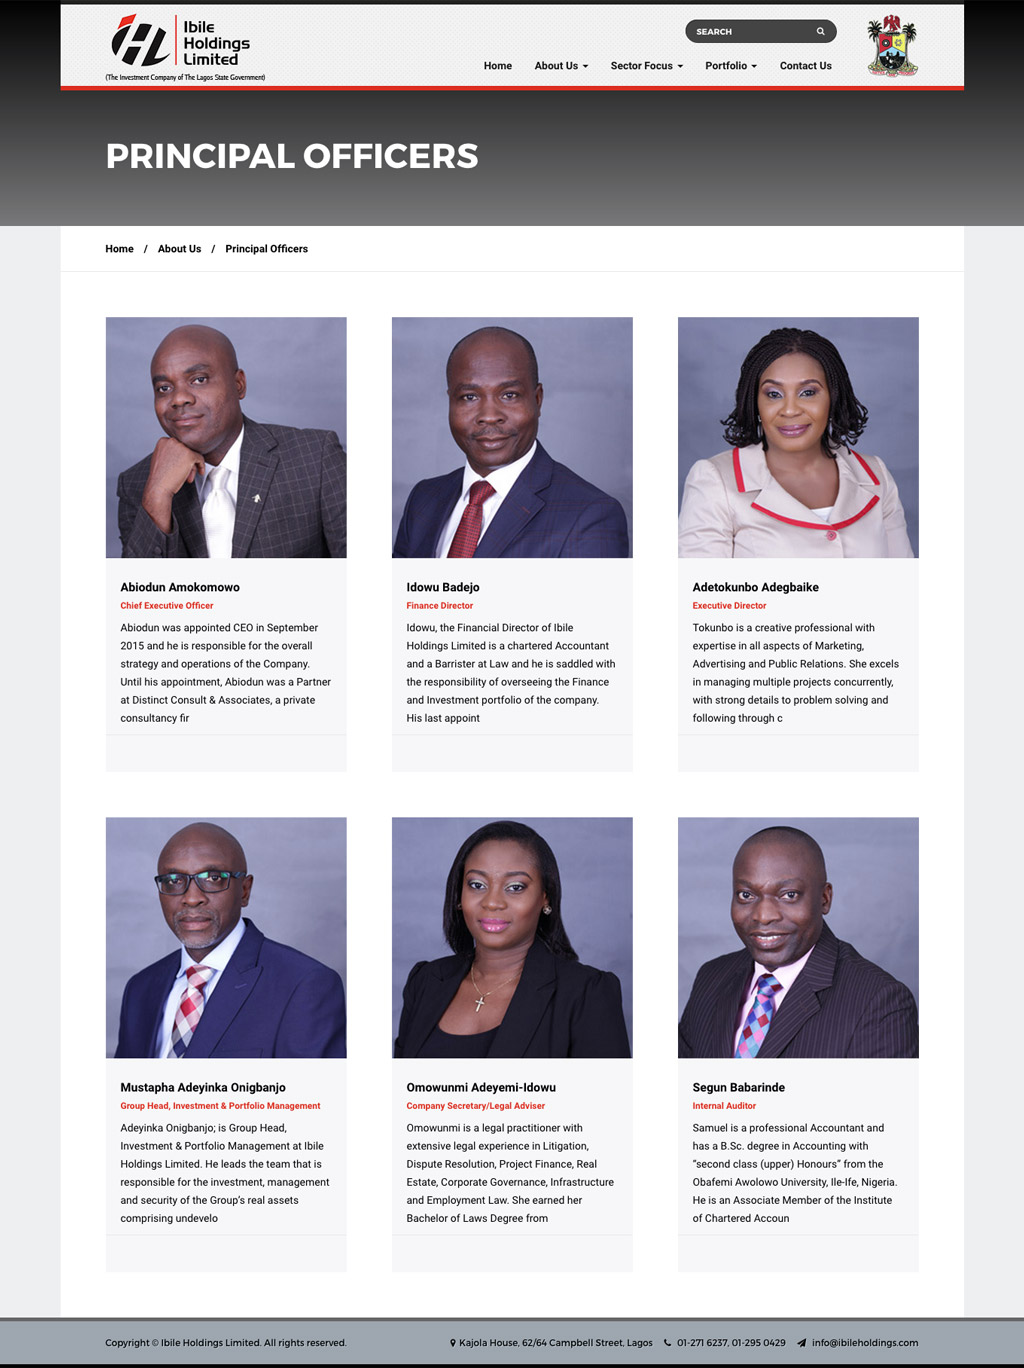 ibile-holdings-website-design-nigeria